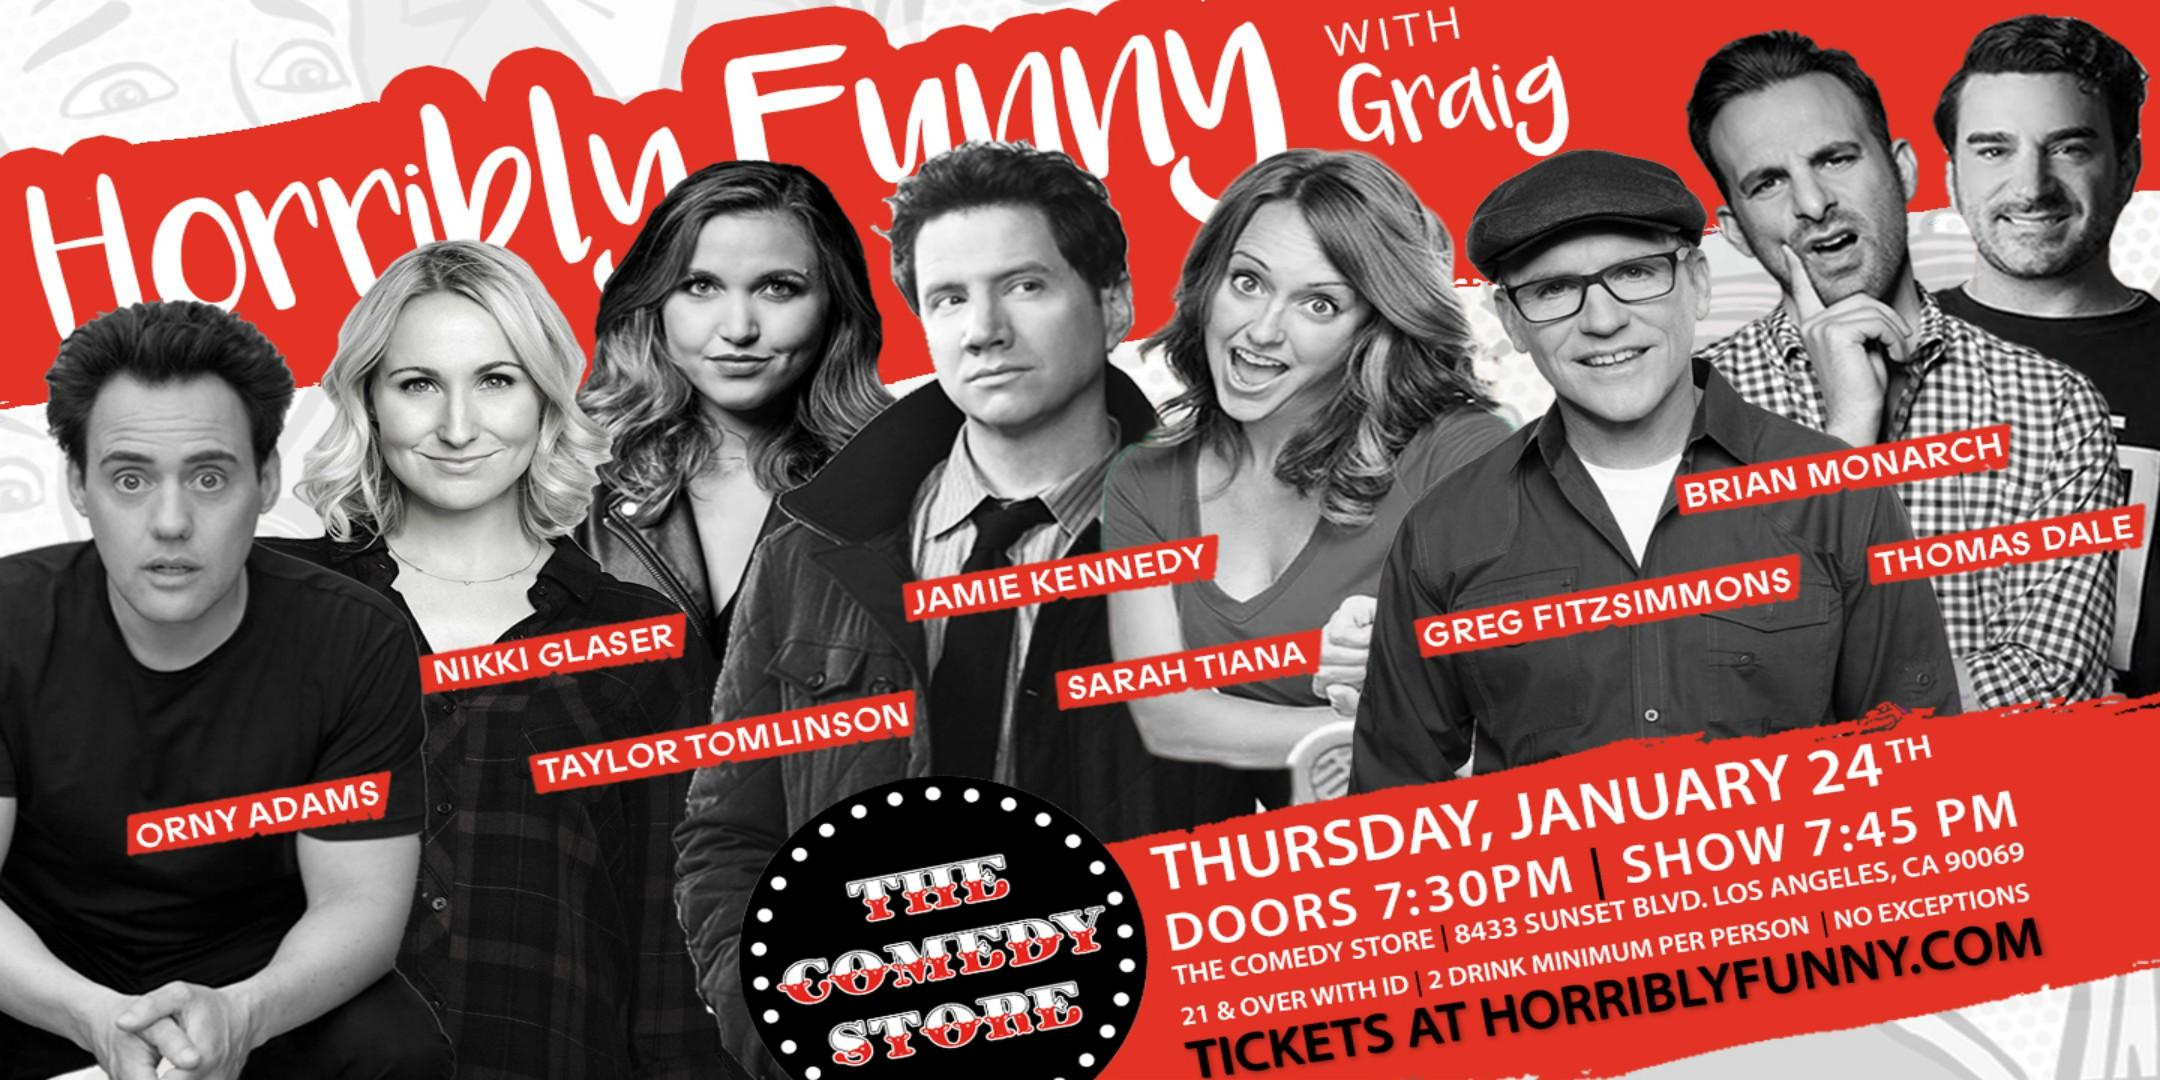 Horribly Funny - Nikki Glaser, Jamie Kennedy, Orny Adams + Greg Fitzsimmons